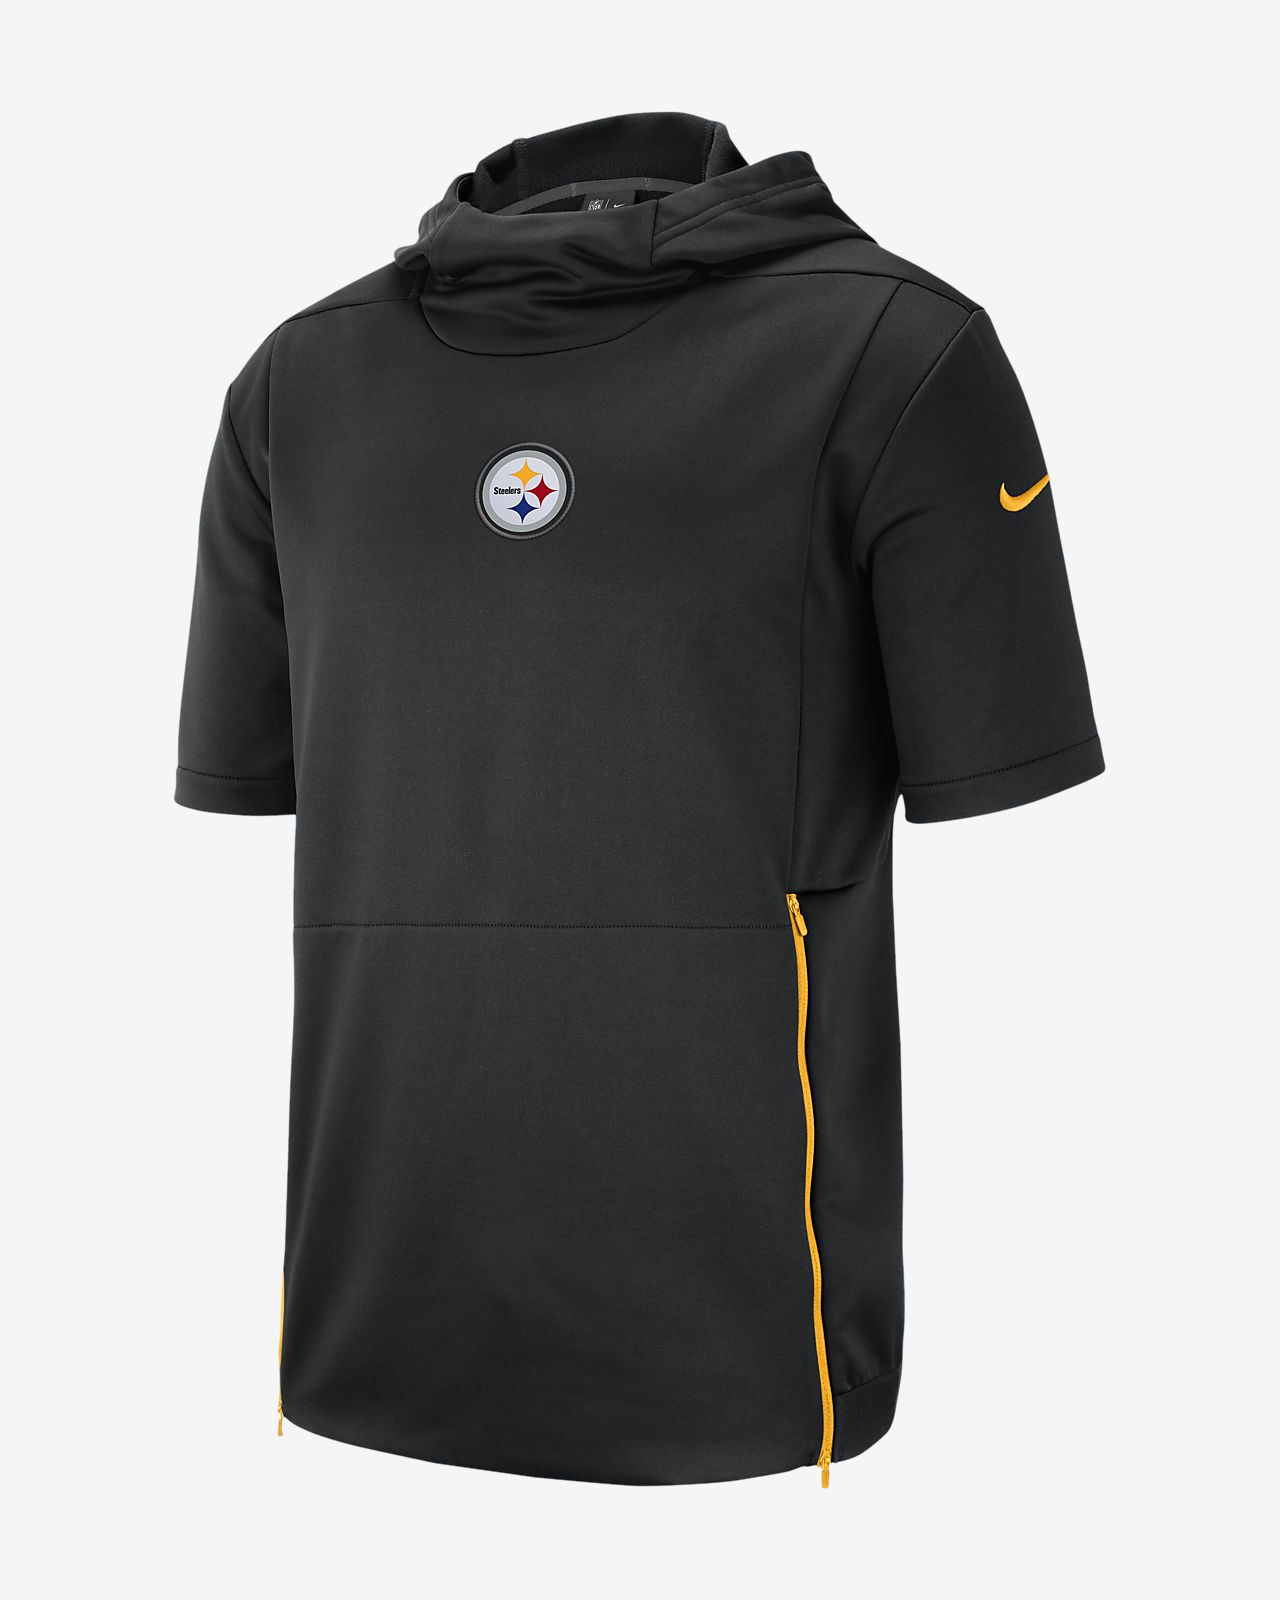 84c85447c29e Nike Dri-FIT Therma (NFL Steelers) Men s Hooded Short Sleeve Top ...